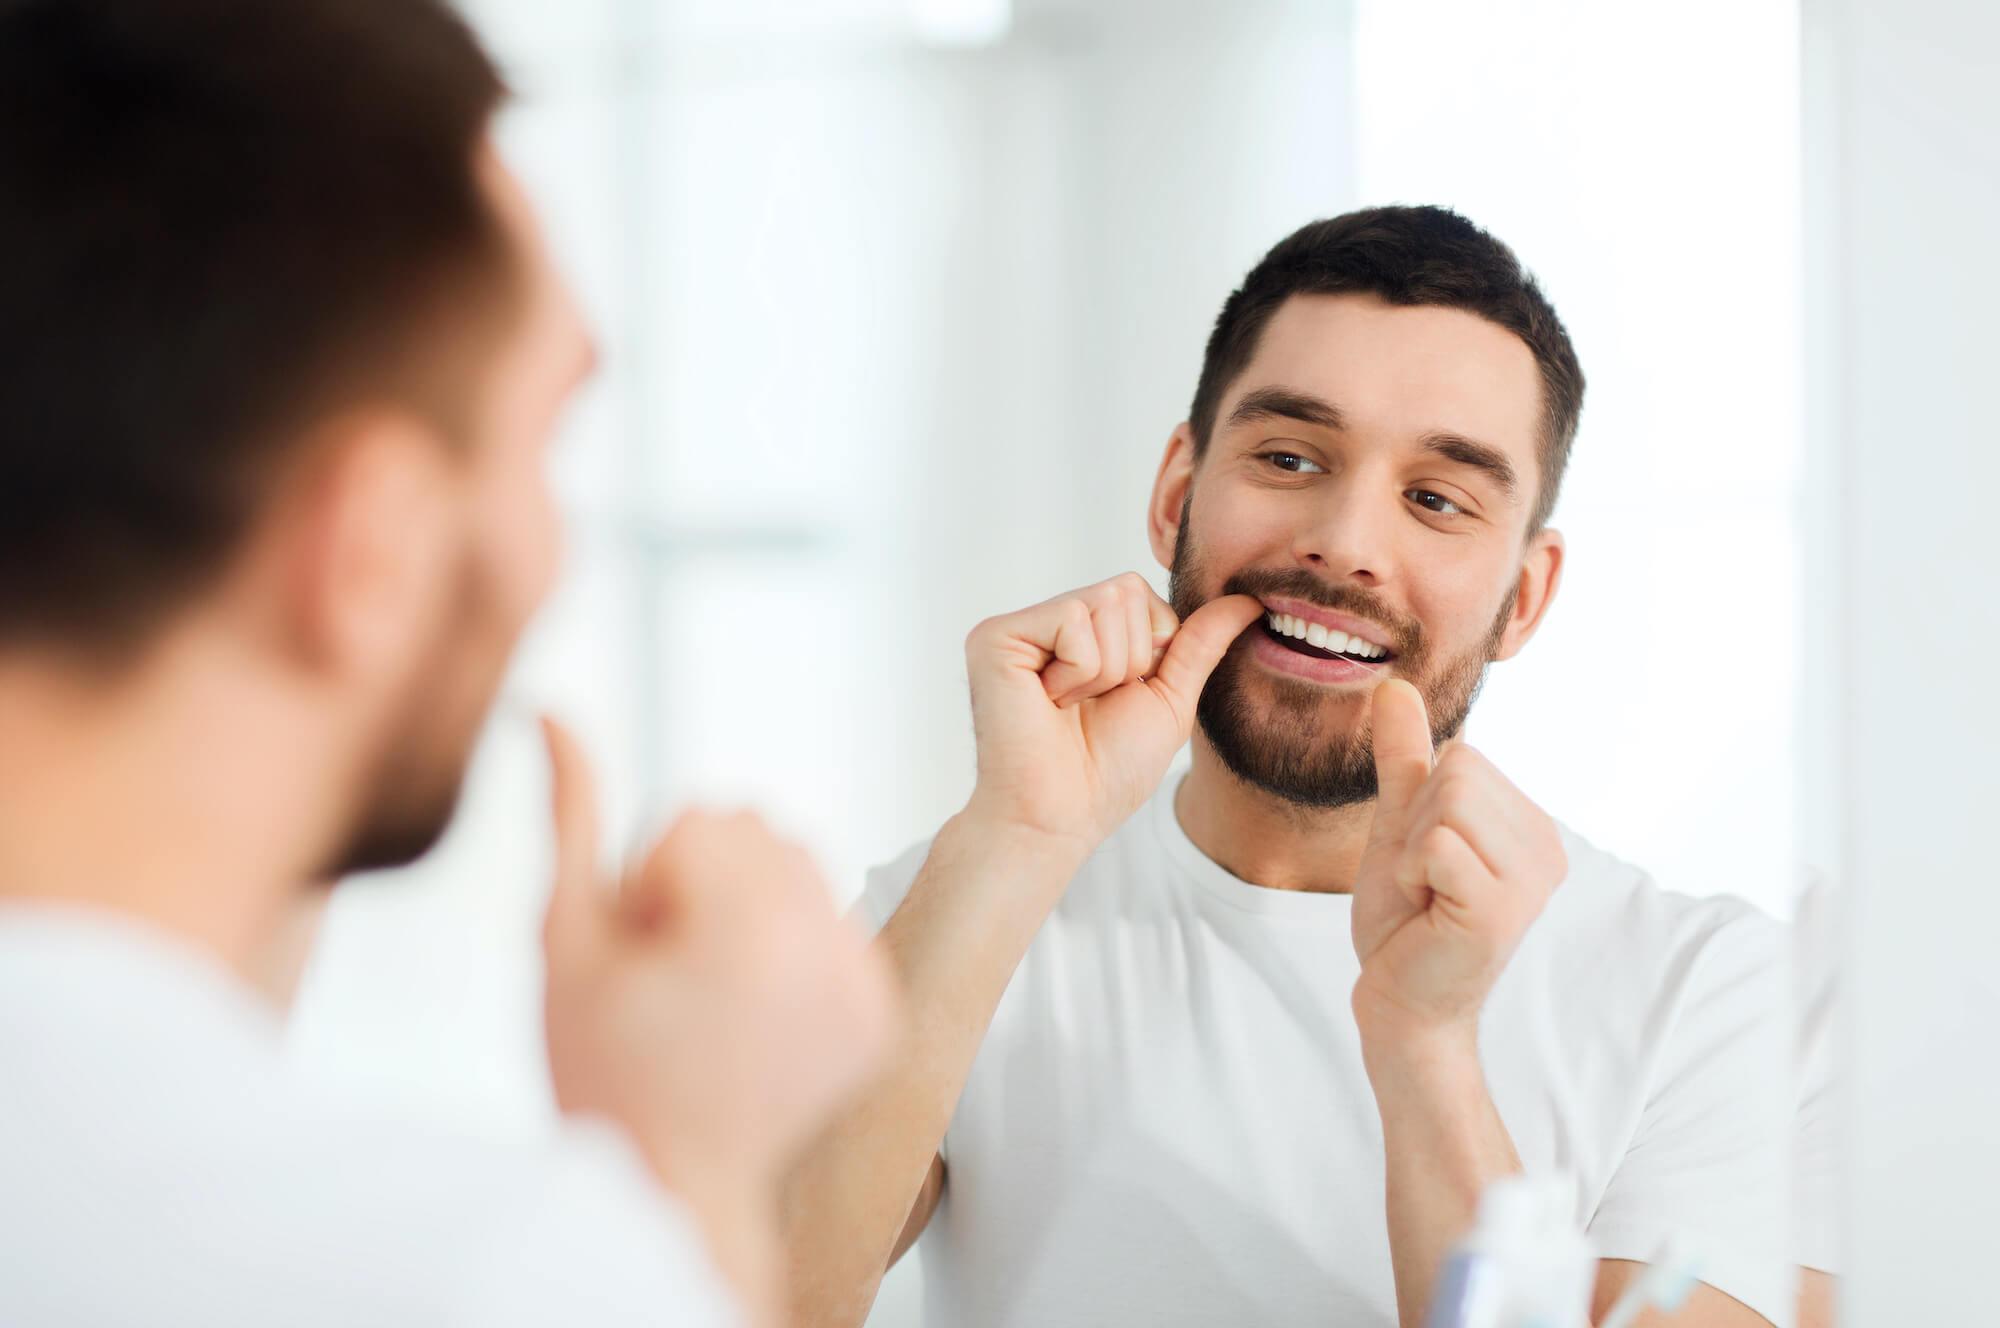 Flossing to Prevent Cavities